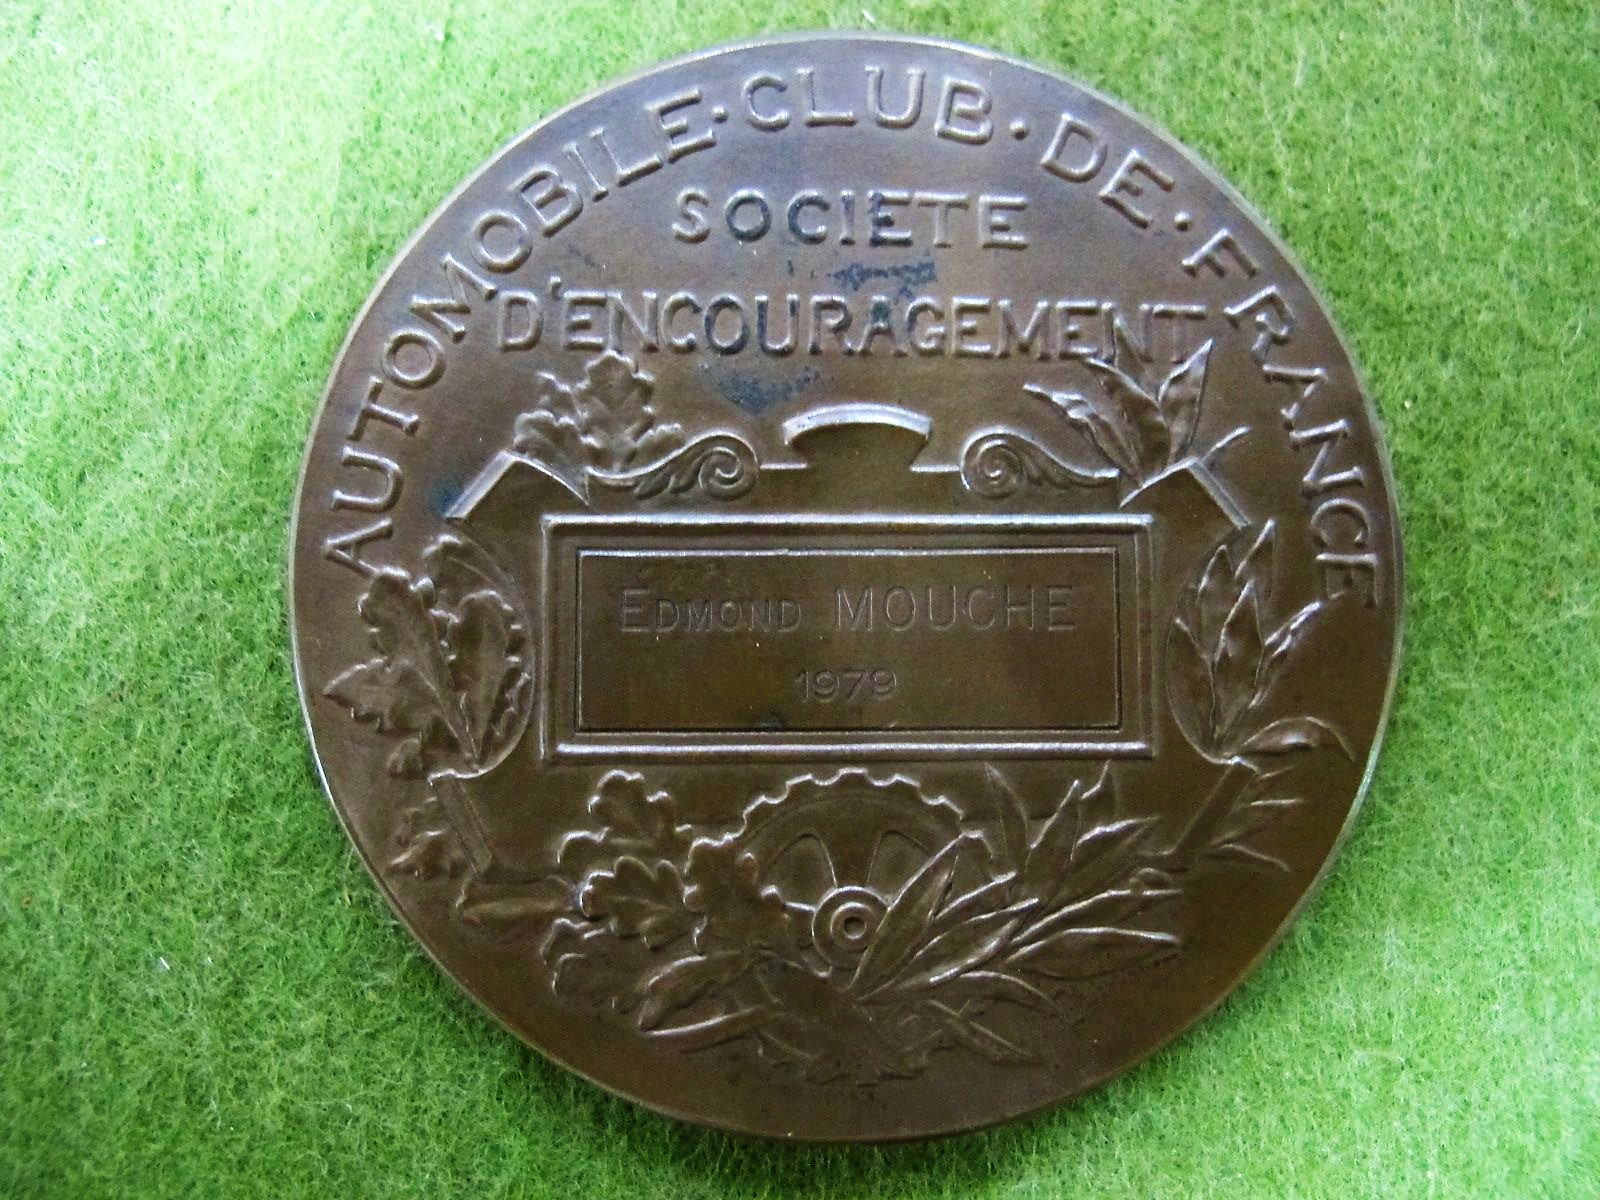 Lot 19 - Automobile Club De France Societe D'Encouragement Bronze Medal Inscribed Edmond Mouche 1979.